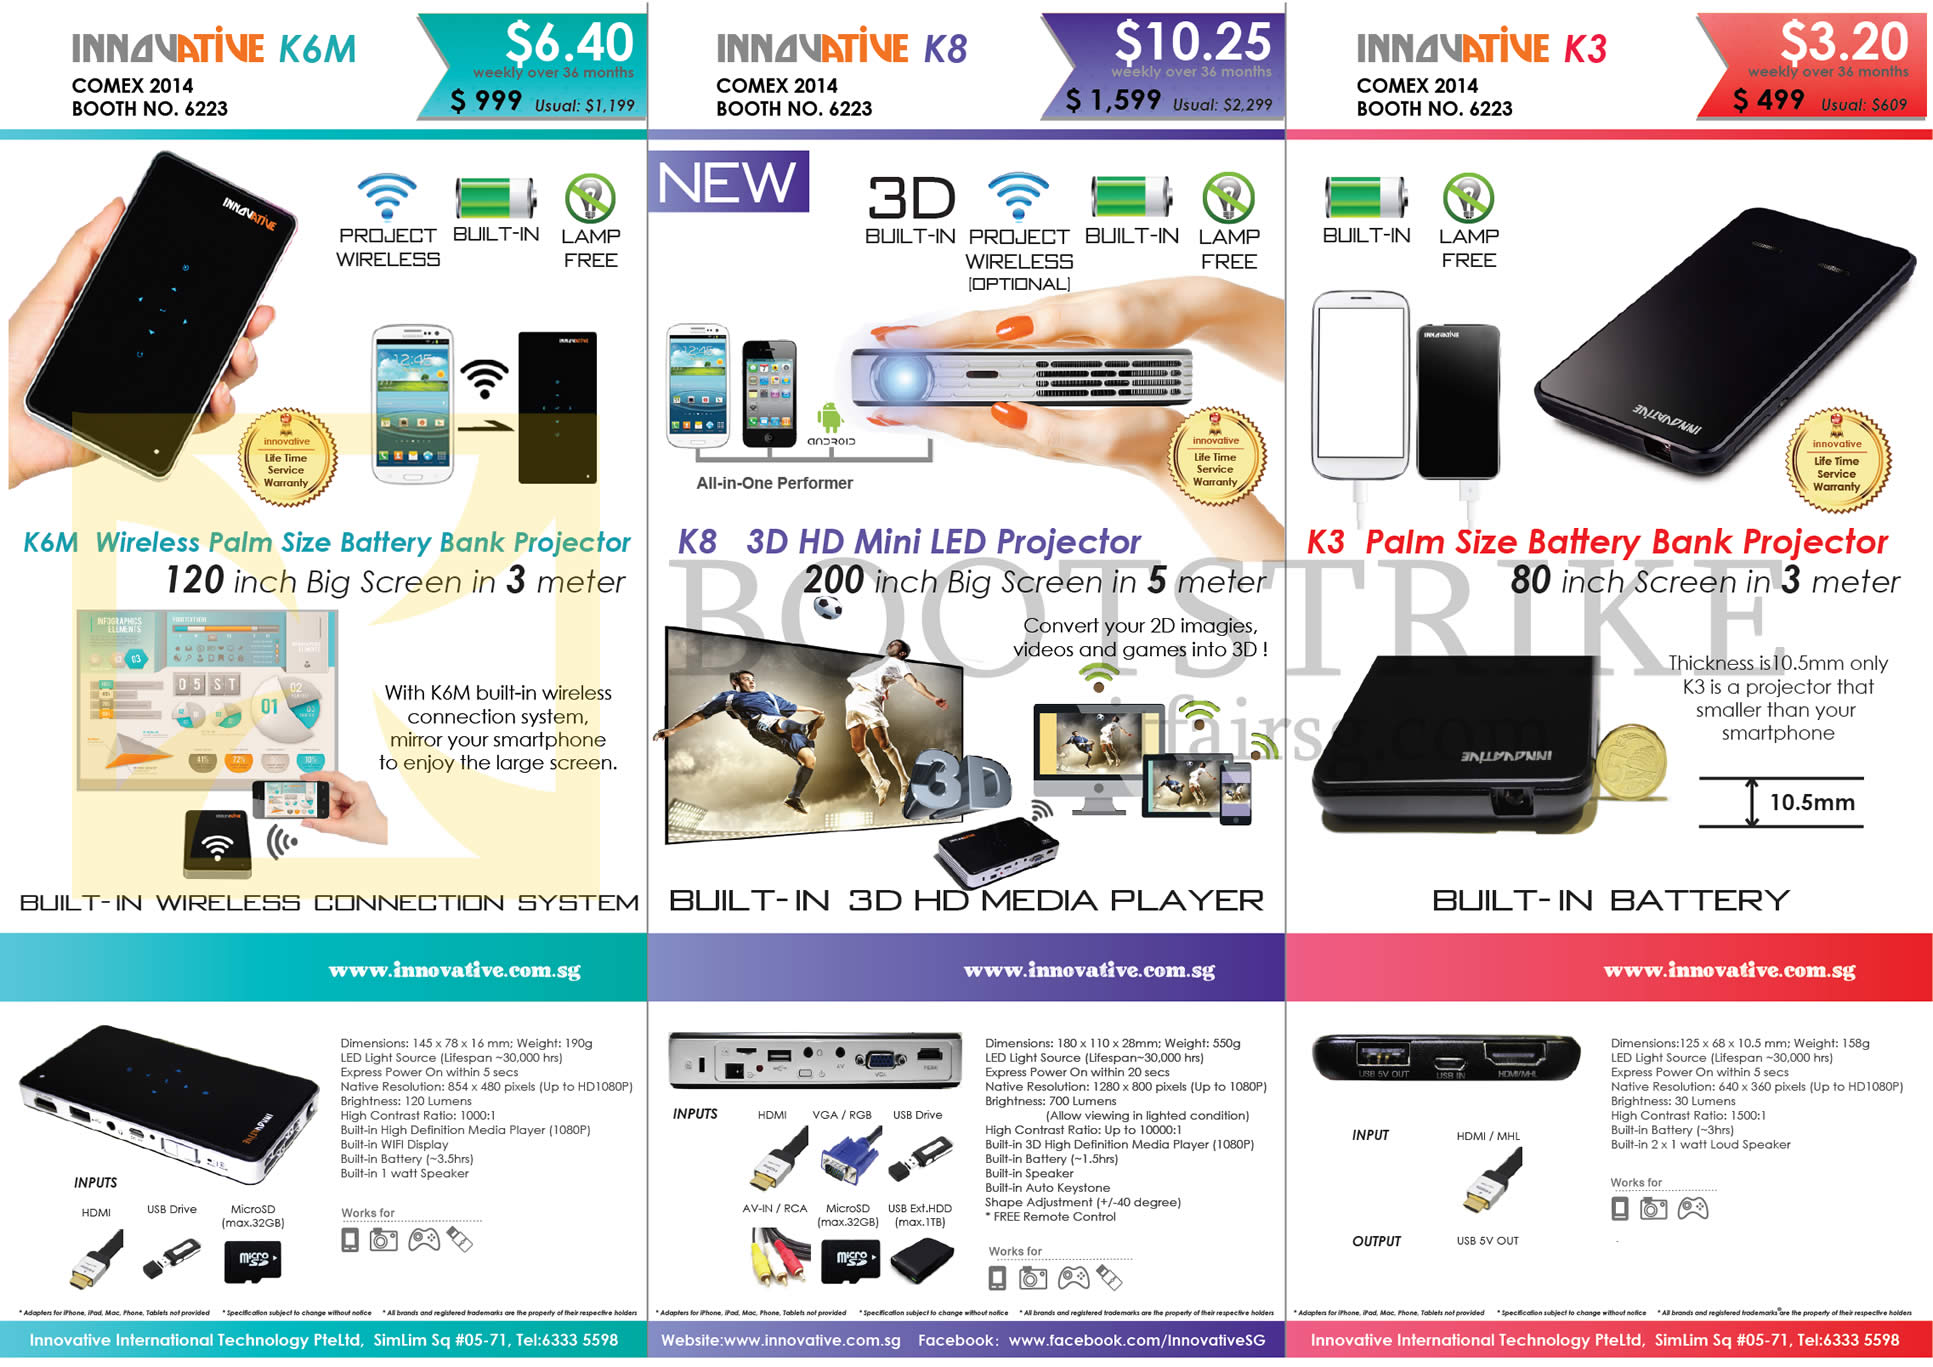 COMEX 2014 price list image brochure of Innovative K6M, K8, K3 Battery Bank Projector